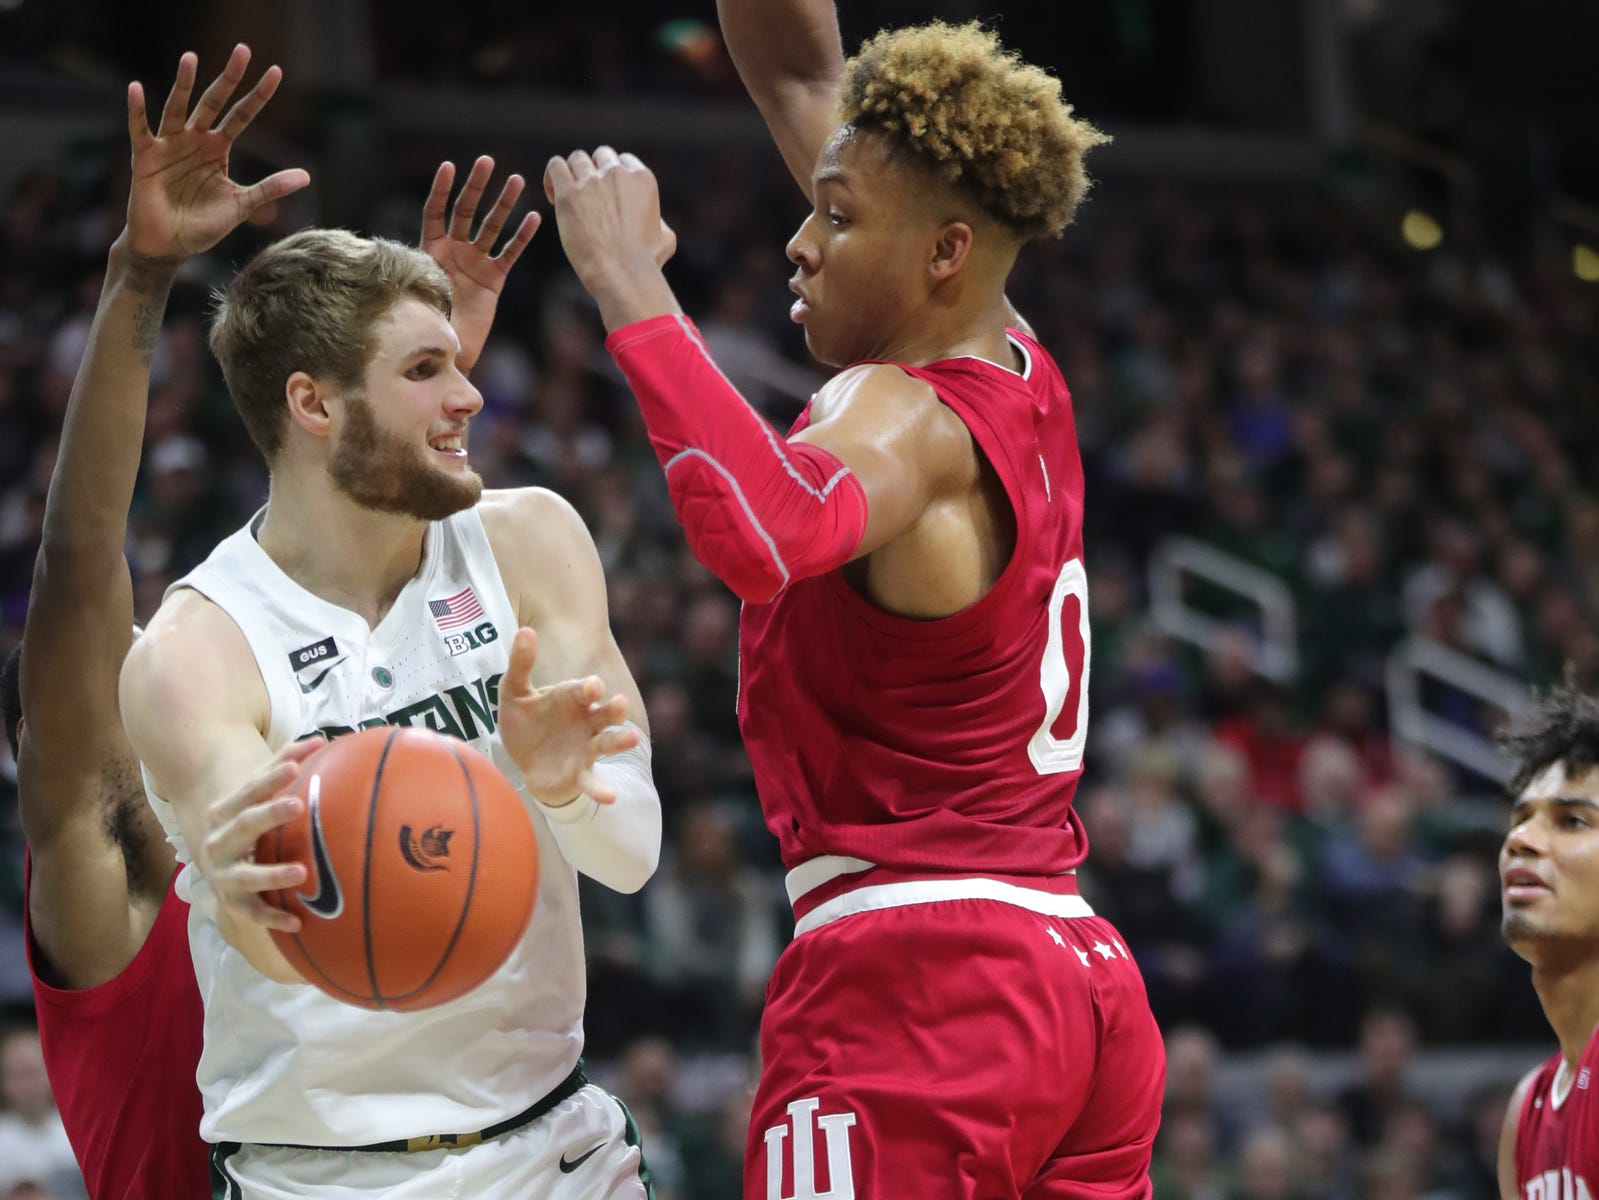 Michigan State against Indiana during first action Saturday, Feb. 2, 2019 at the Breslin Center in East Lansing, Mich.